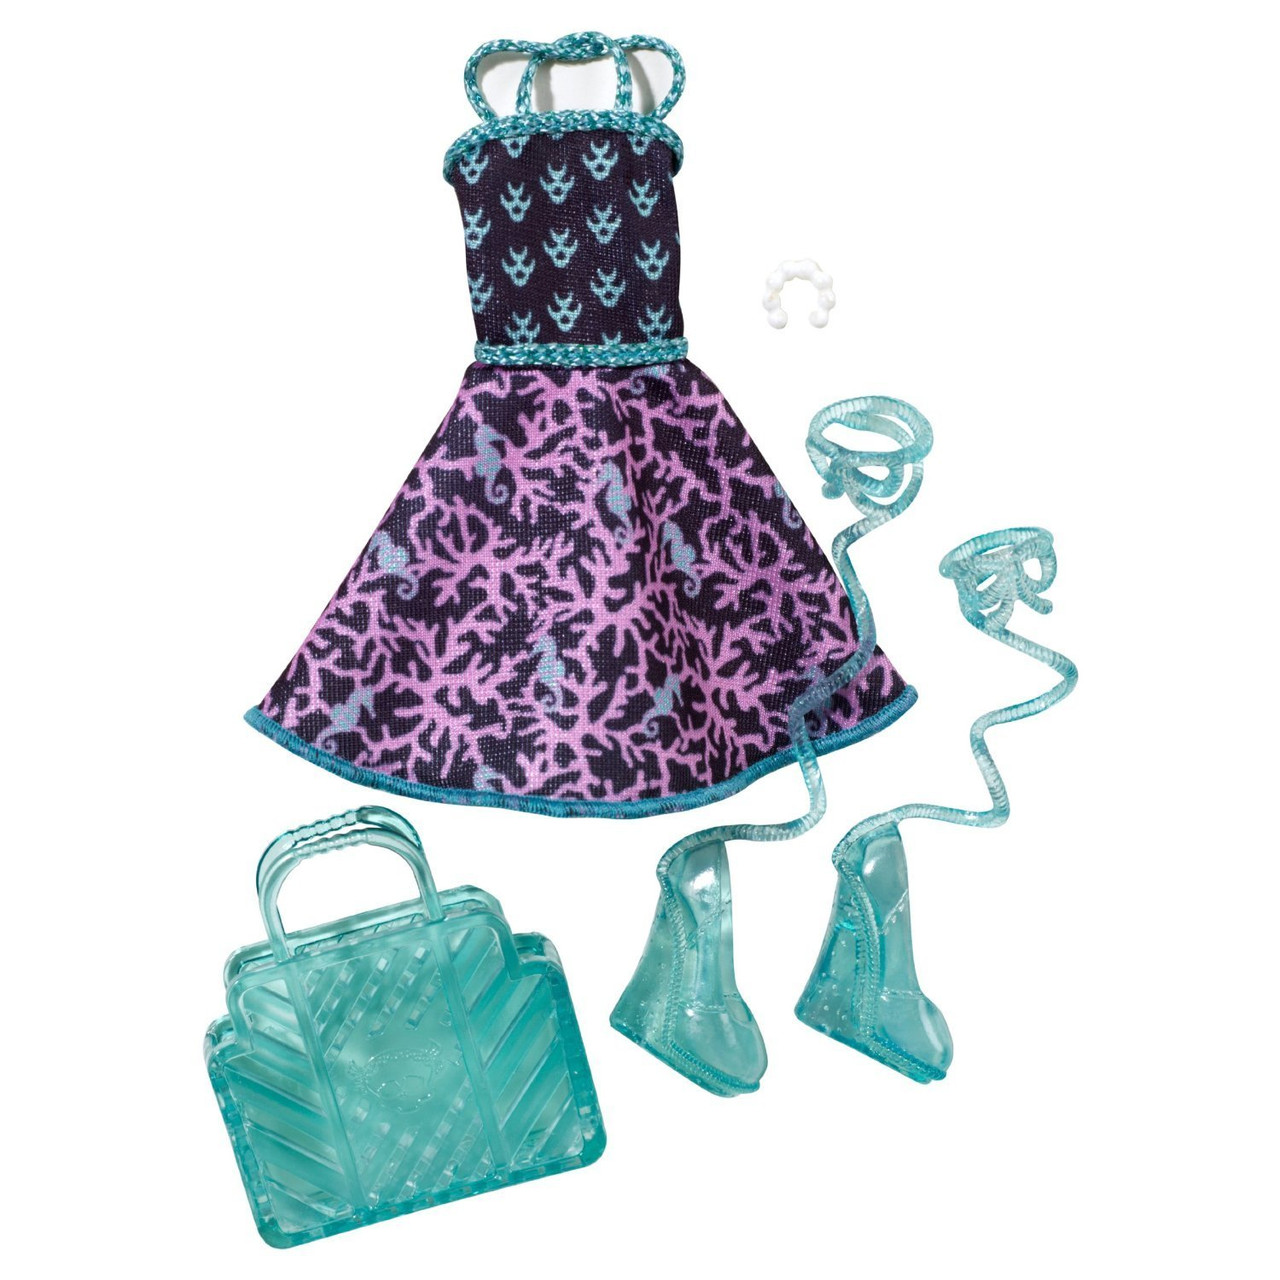 e349010c0829 Одежда для Лагуны Блю (Monster High Lagoona Blue Basic Fashion Pack), фото 1